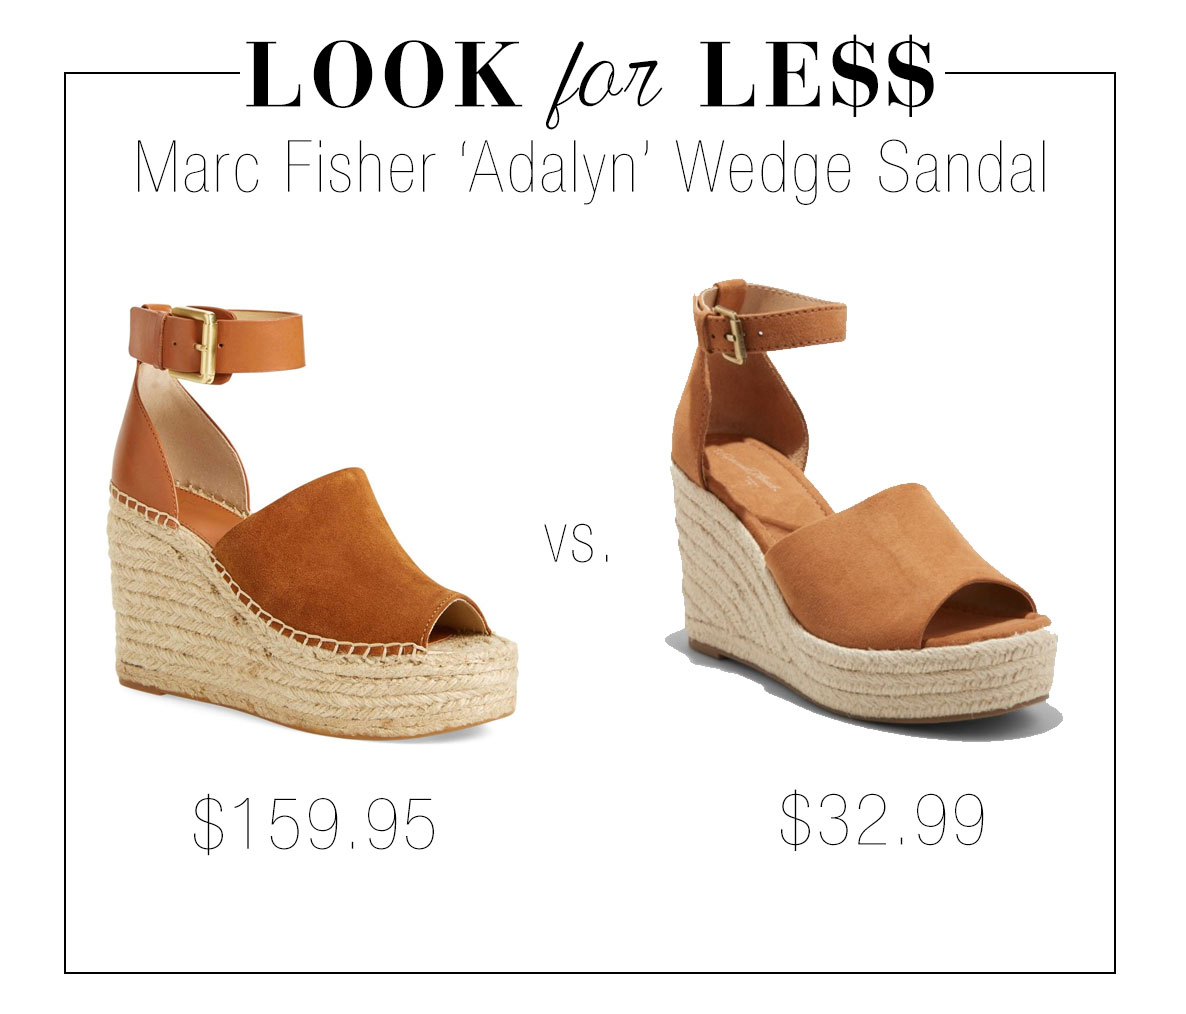 5698285a4f Shop this Marc Fisher wedge espadrille sandal look for less at Target!